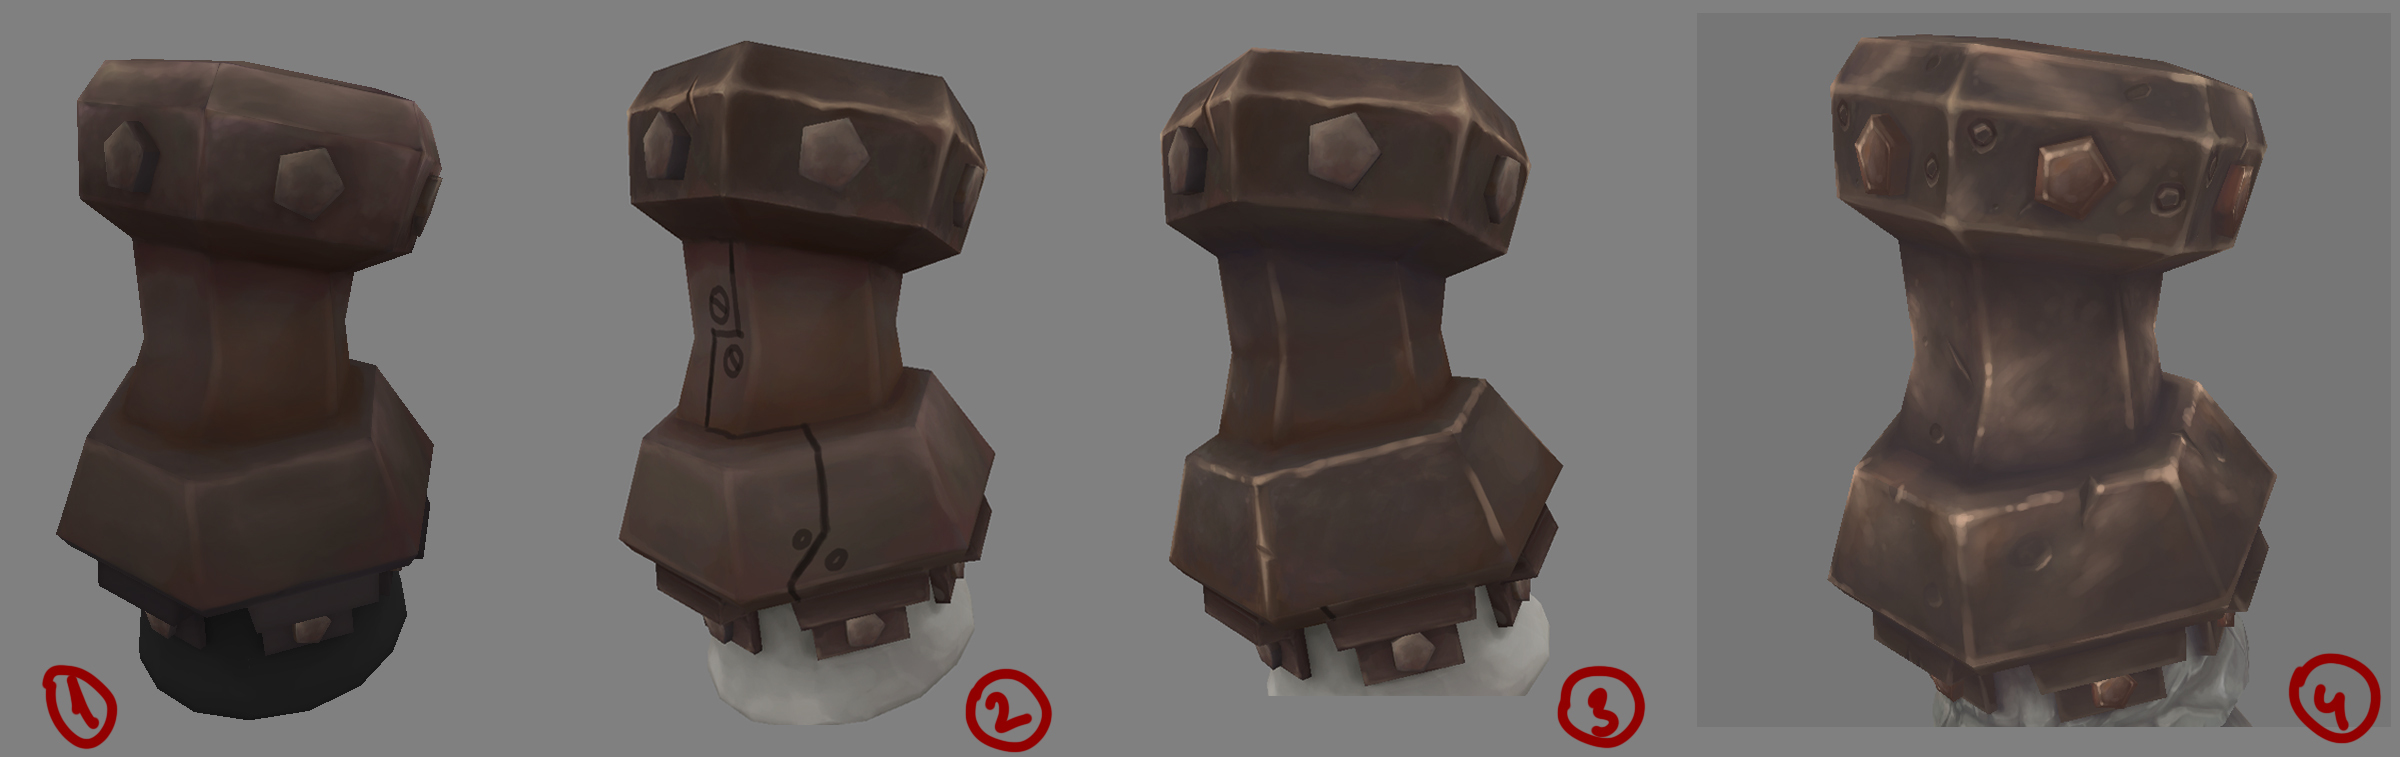 Hand painted texture progression